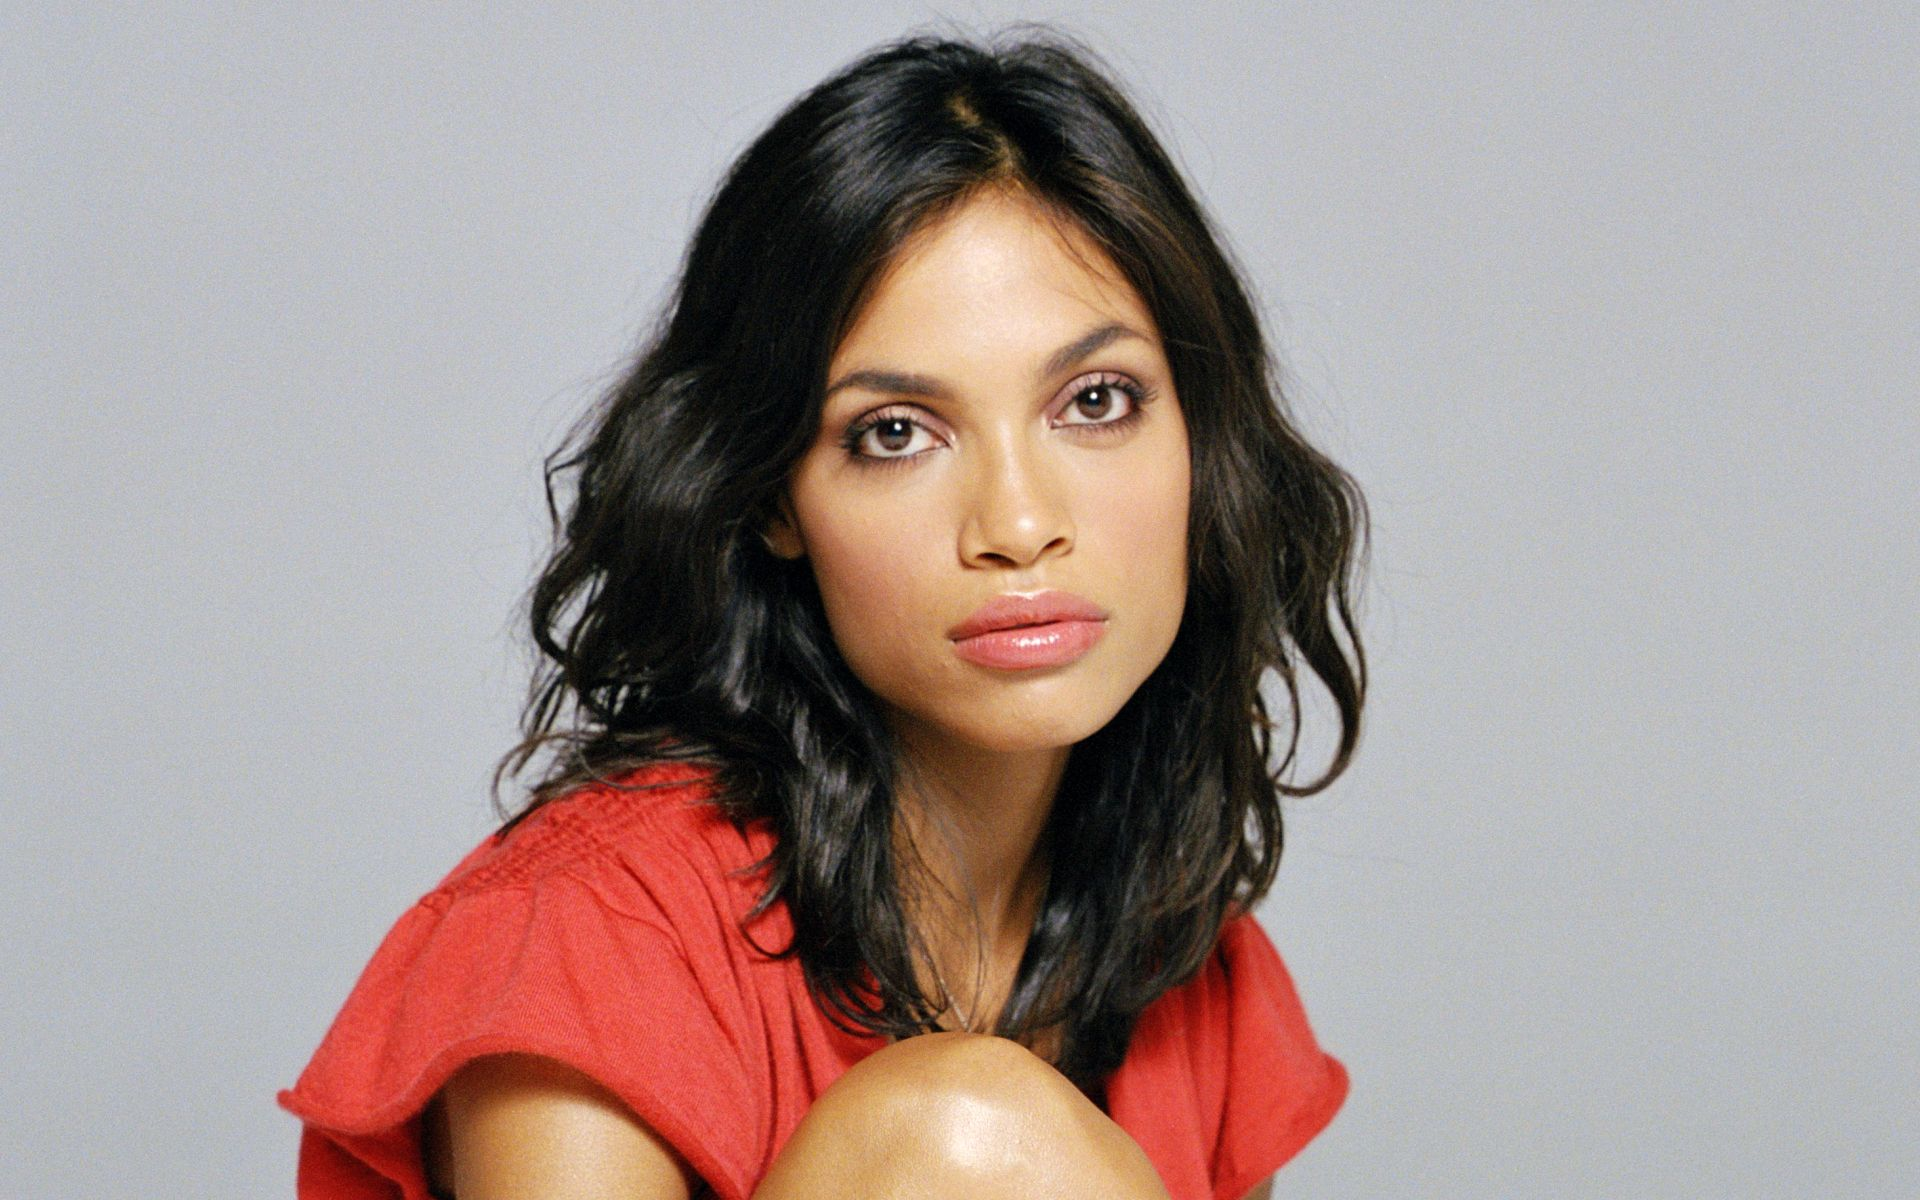 14 HD Rosario Dawson Wallpapers - HDWallSource.com | The A ... Rosario Dawson